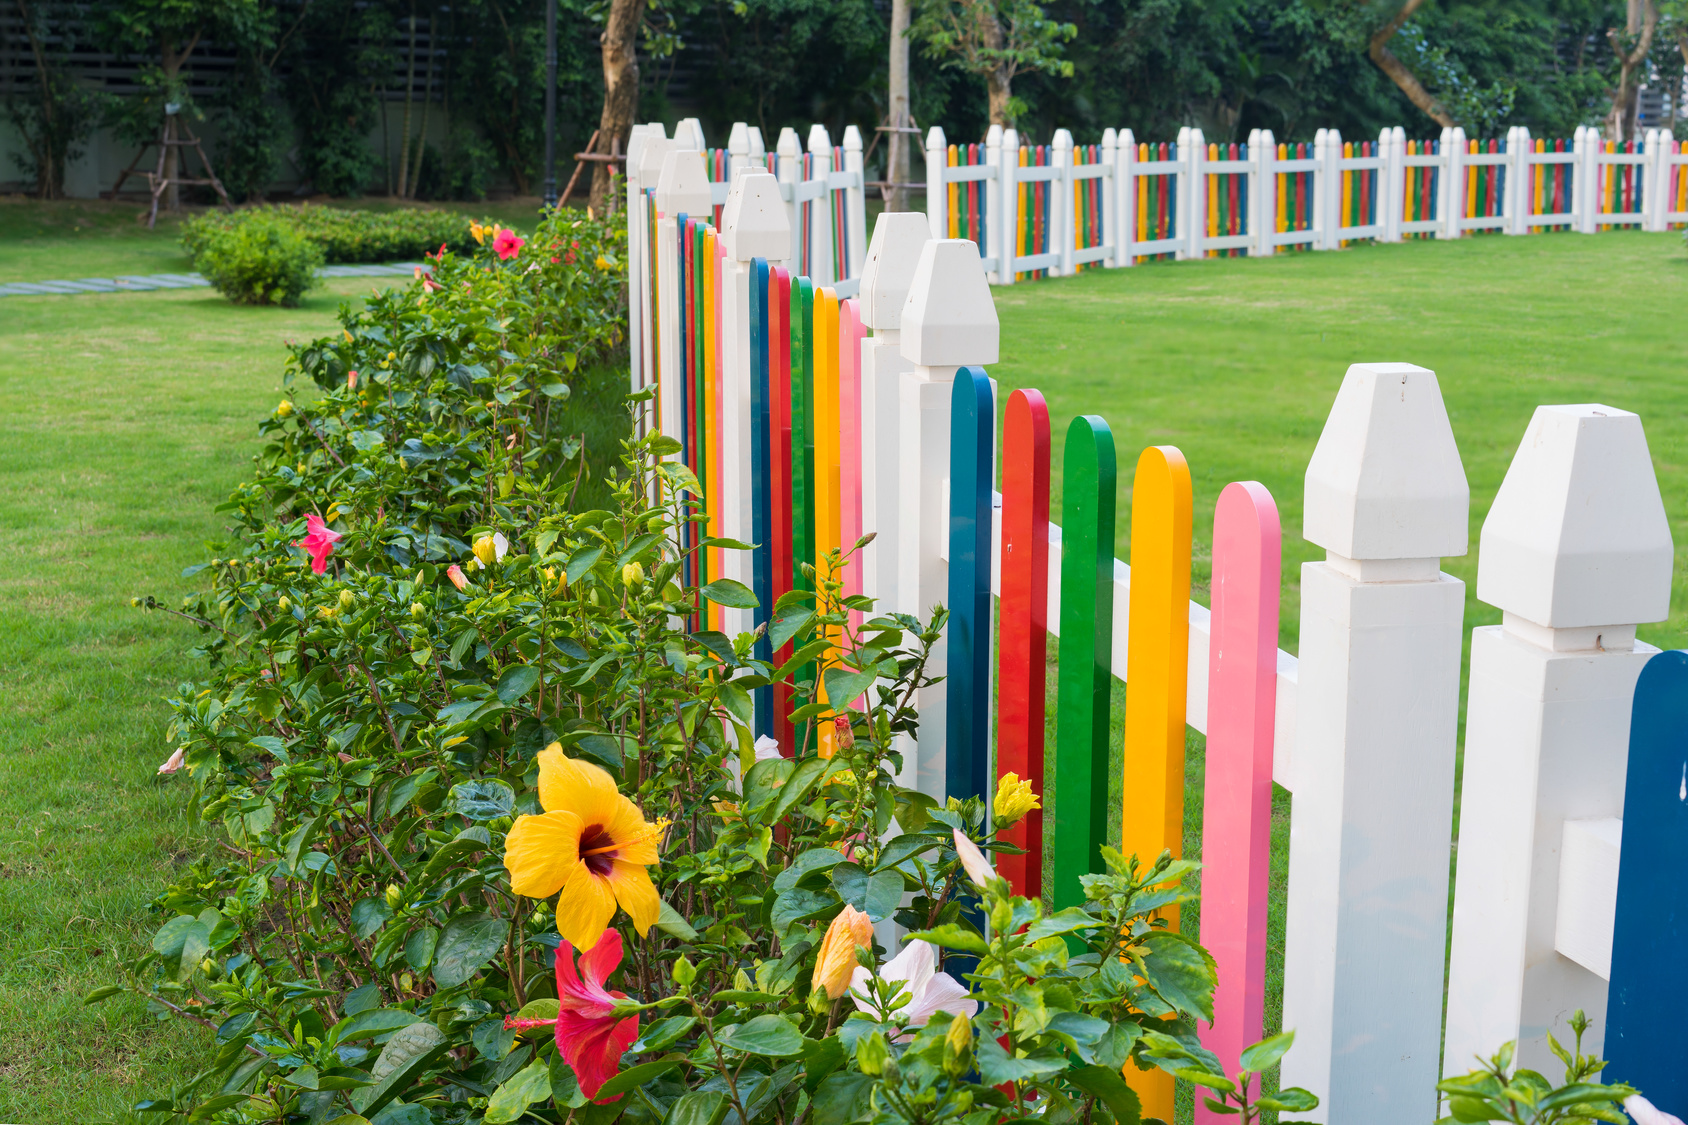 A very attractive fence with flowers